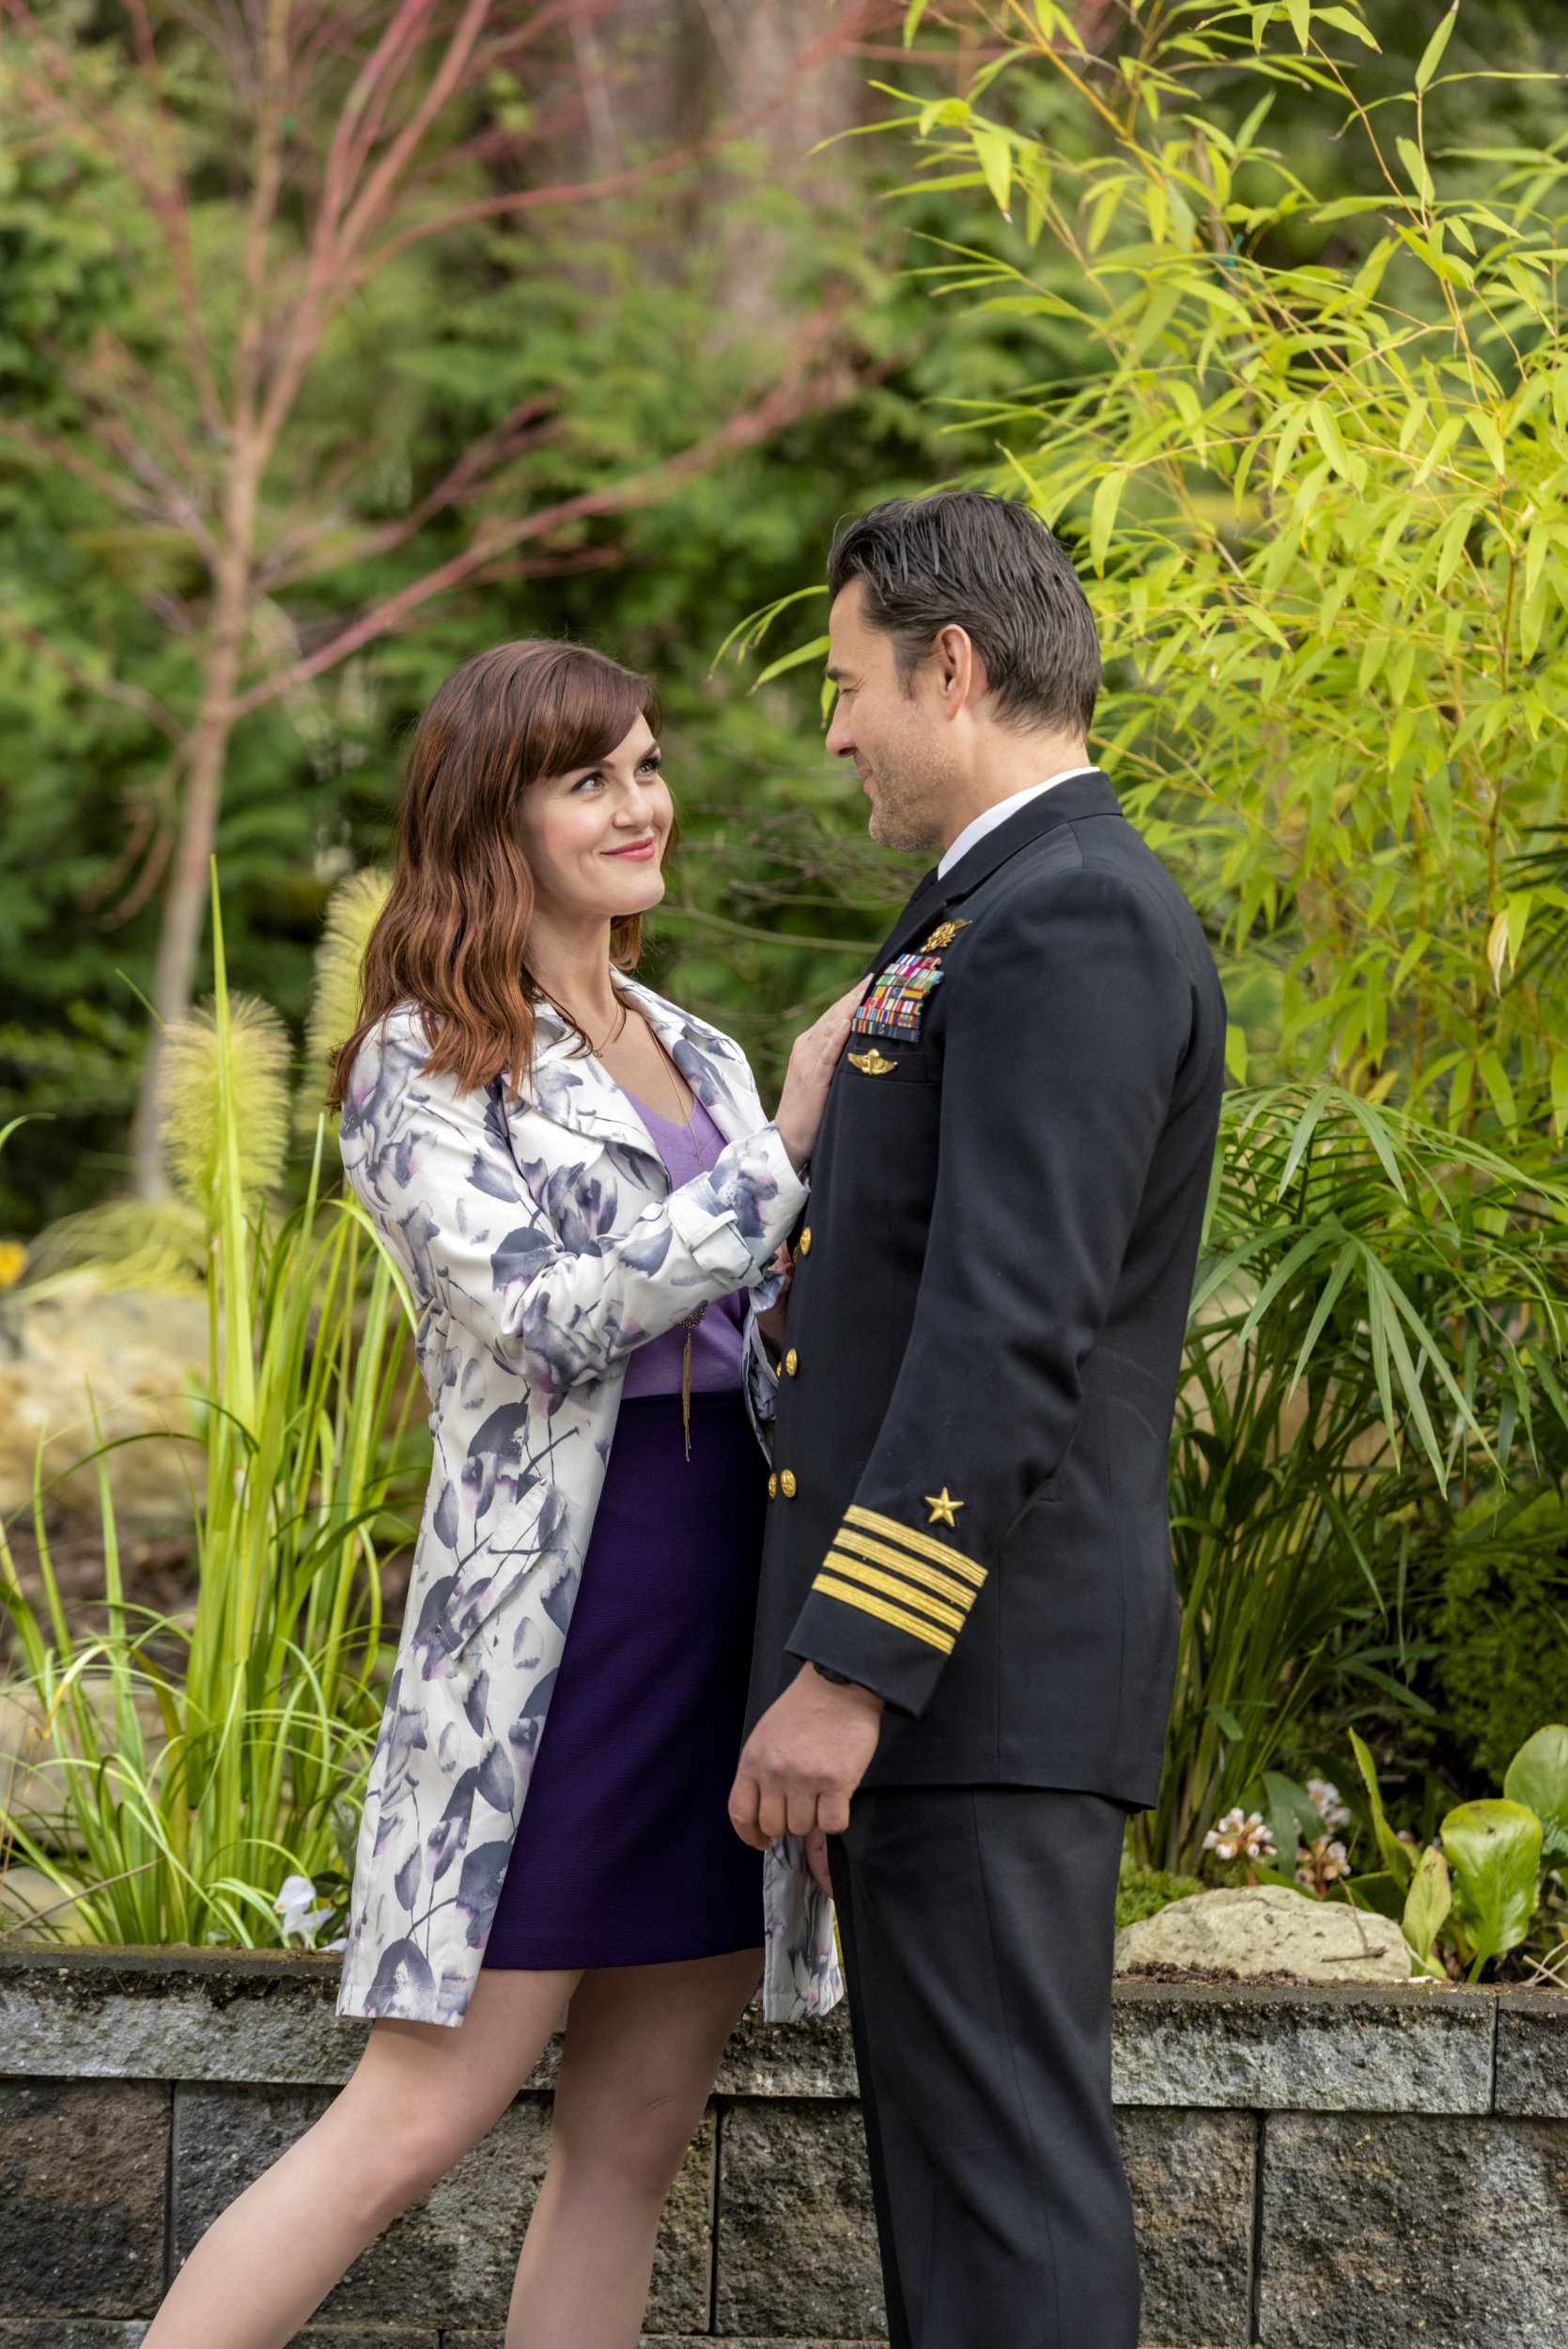 All for Love | Hallmark Channel